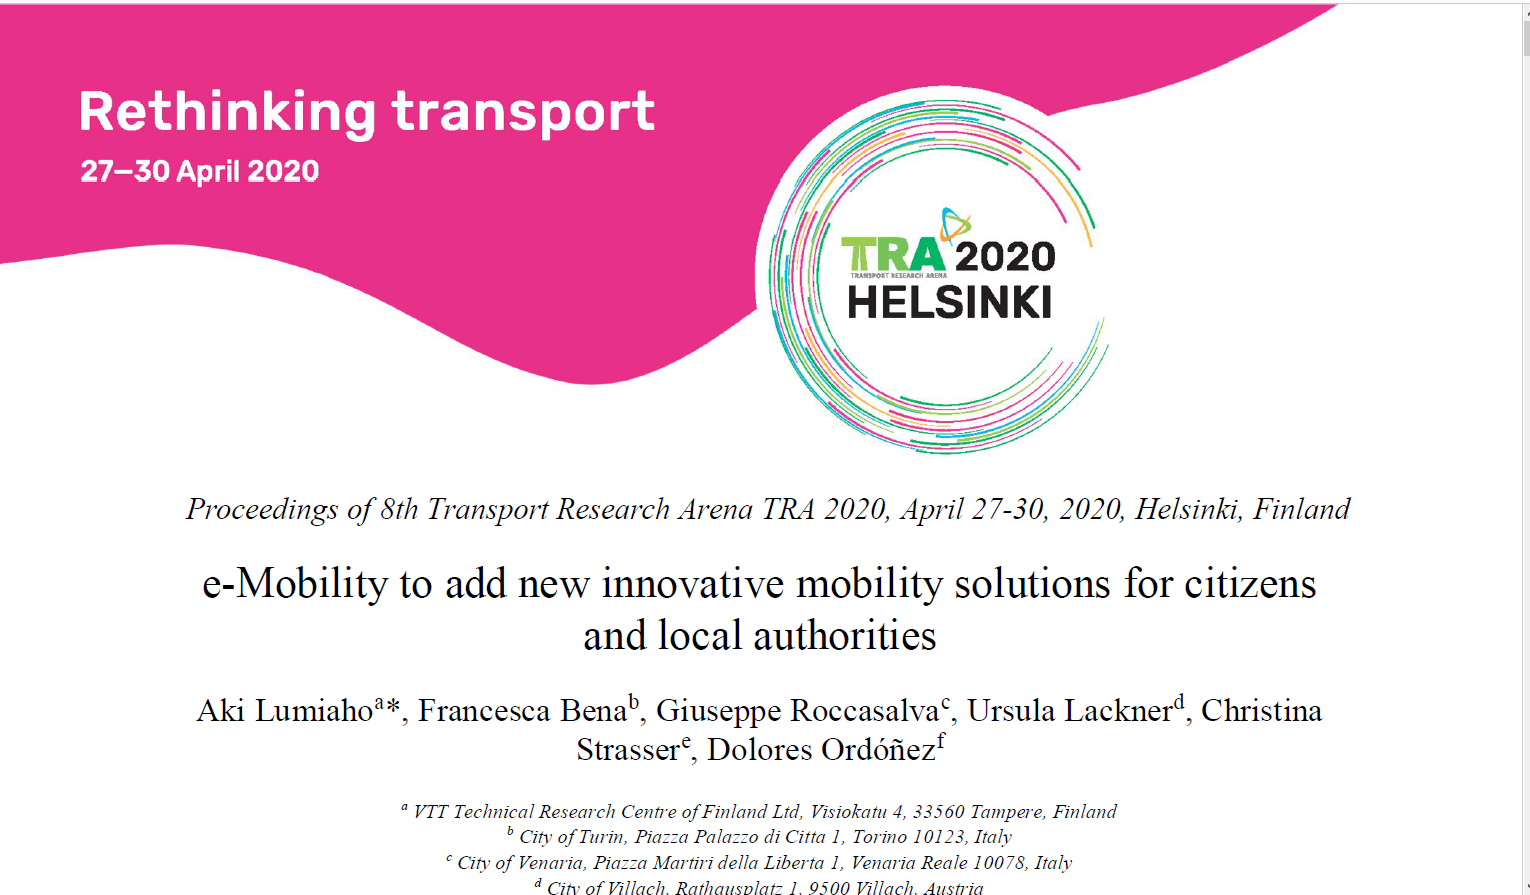 e-Mobility to add new innovative mobility solutions for citizens and local authorities